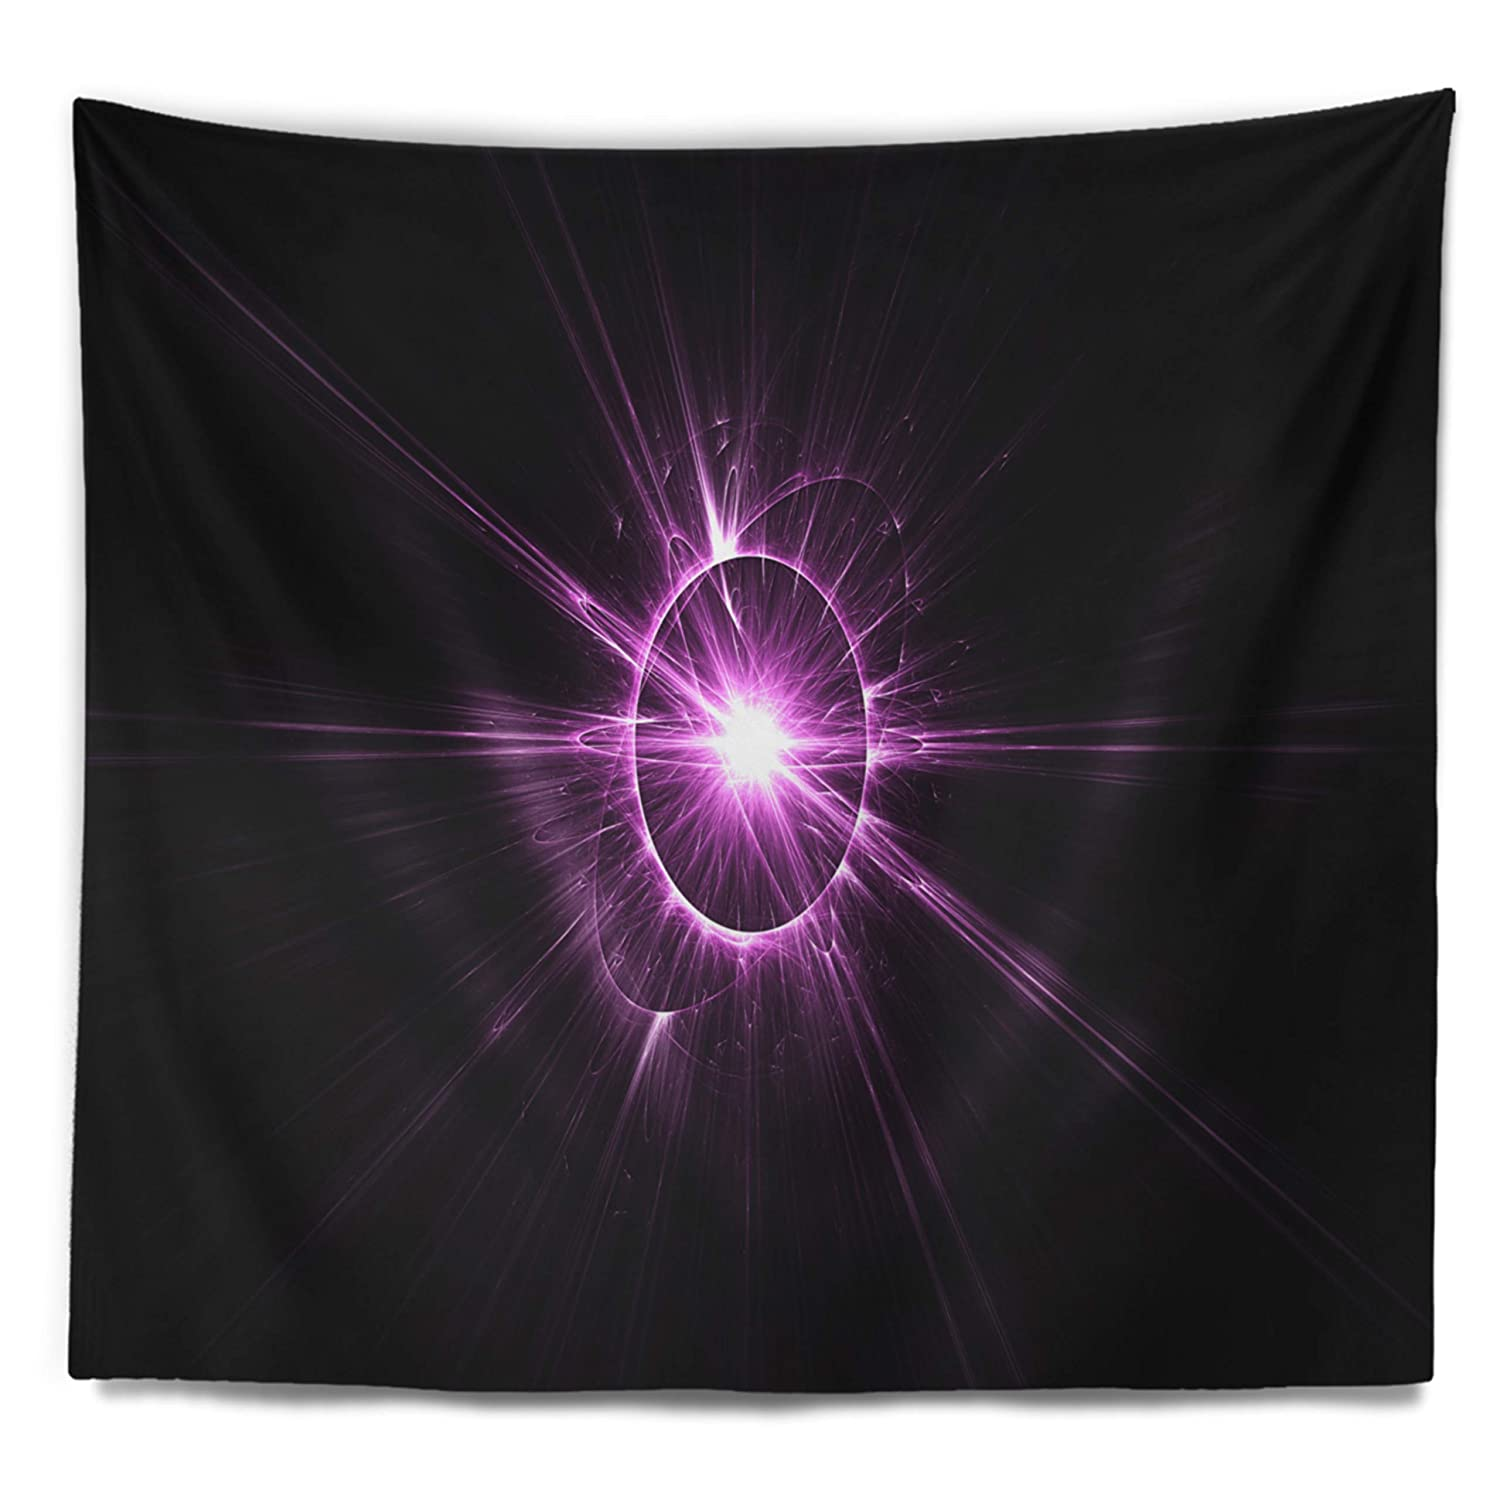 Designart TAP15546-60-50 Purple Flash of Bright Star Floral Blanket D/écor Art for Home and Office Wall Tapestry Large 60 x 50